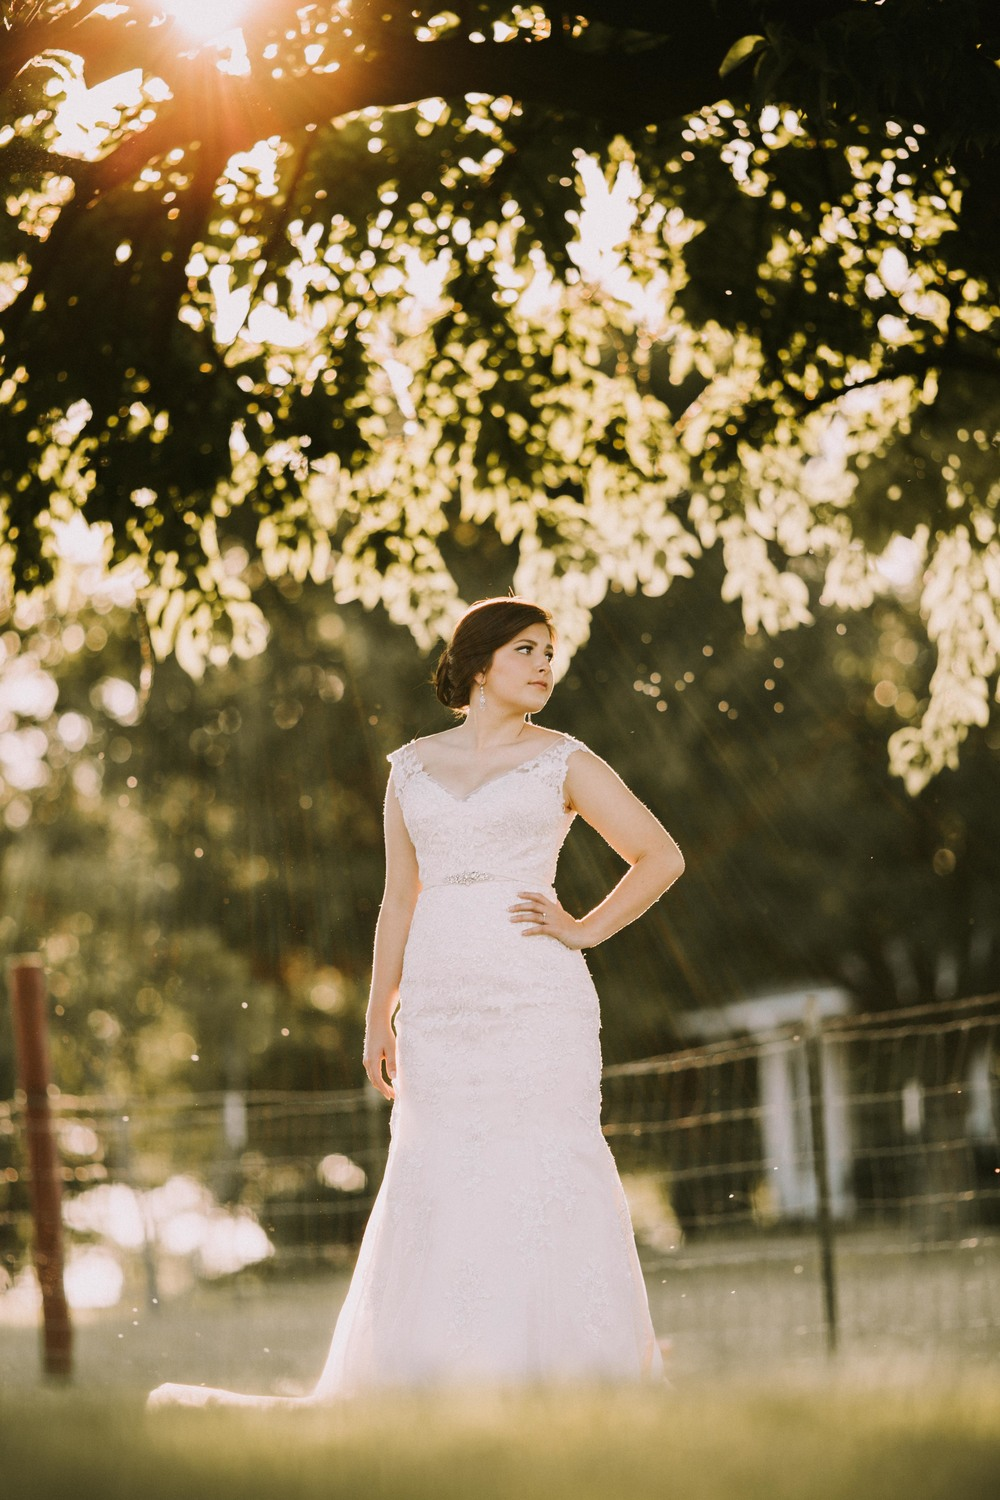 Backlit Bridal Sunset